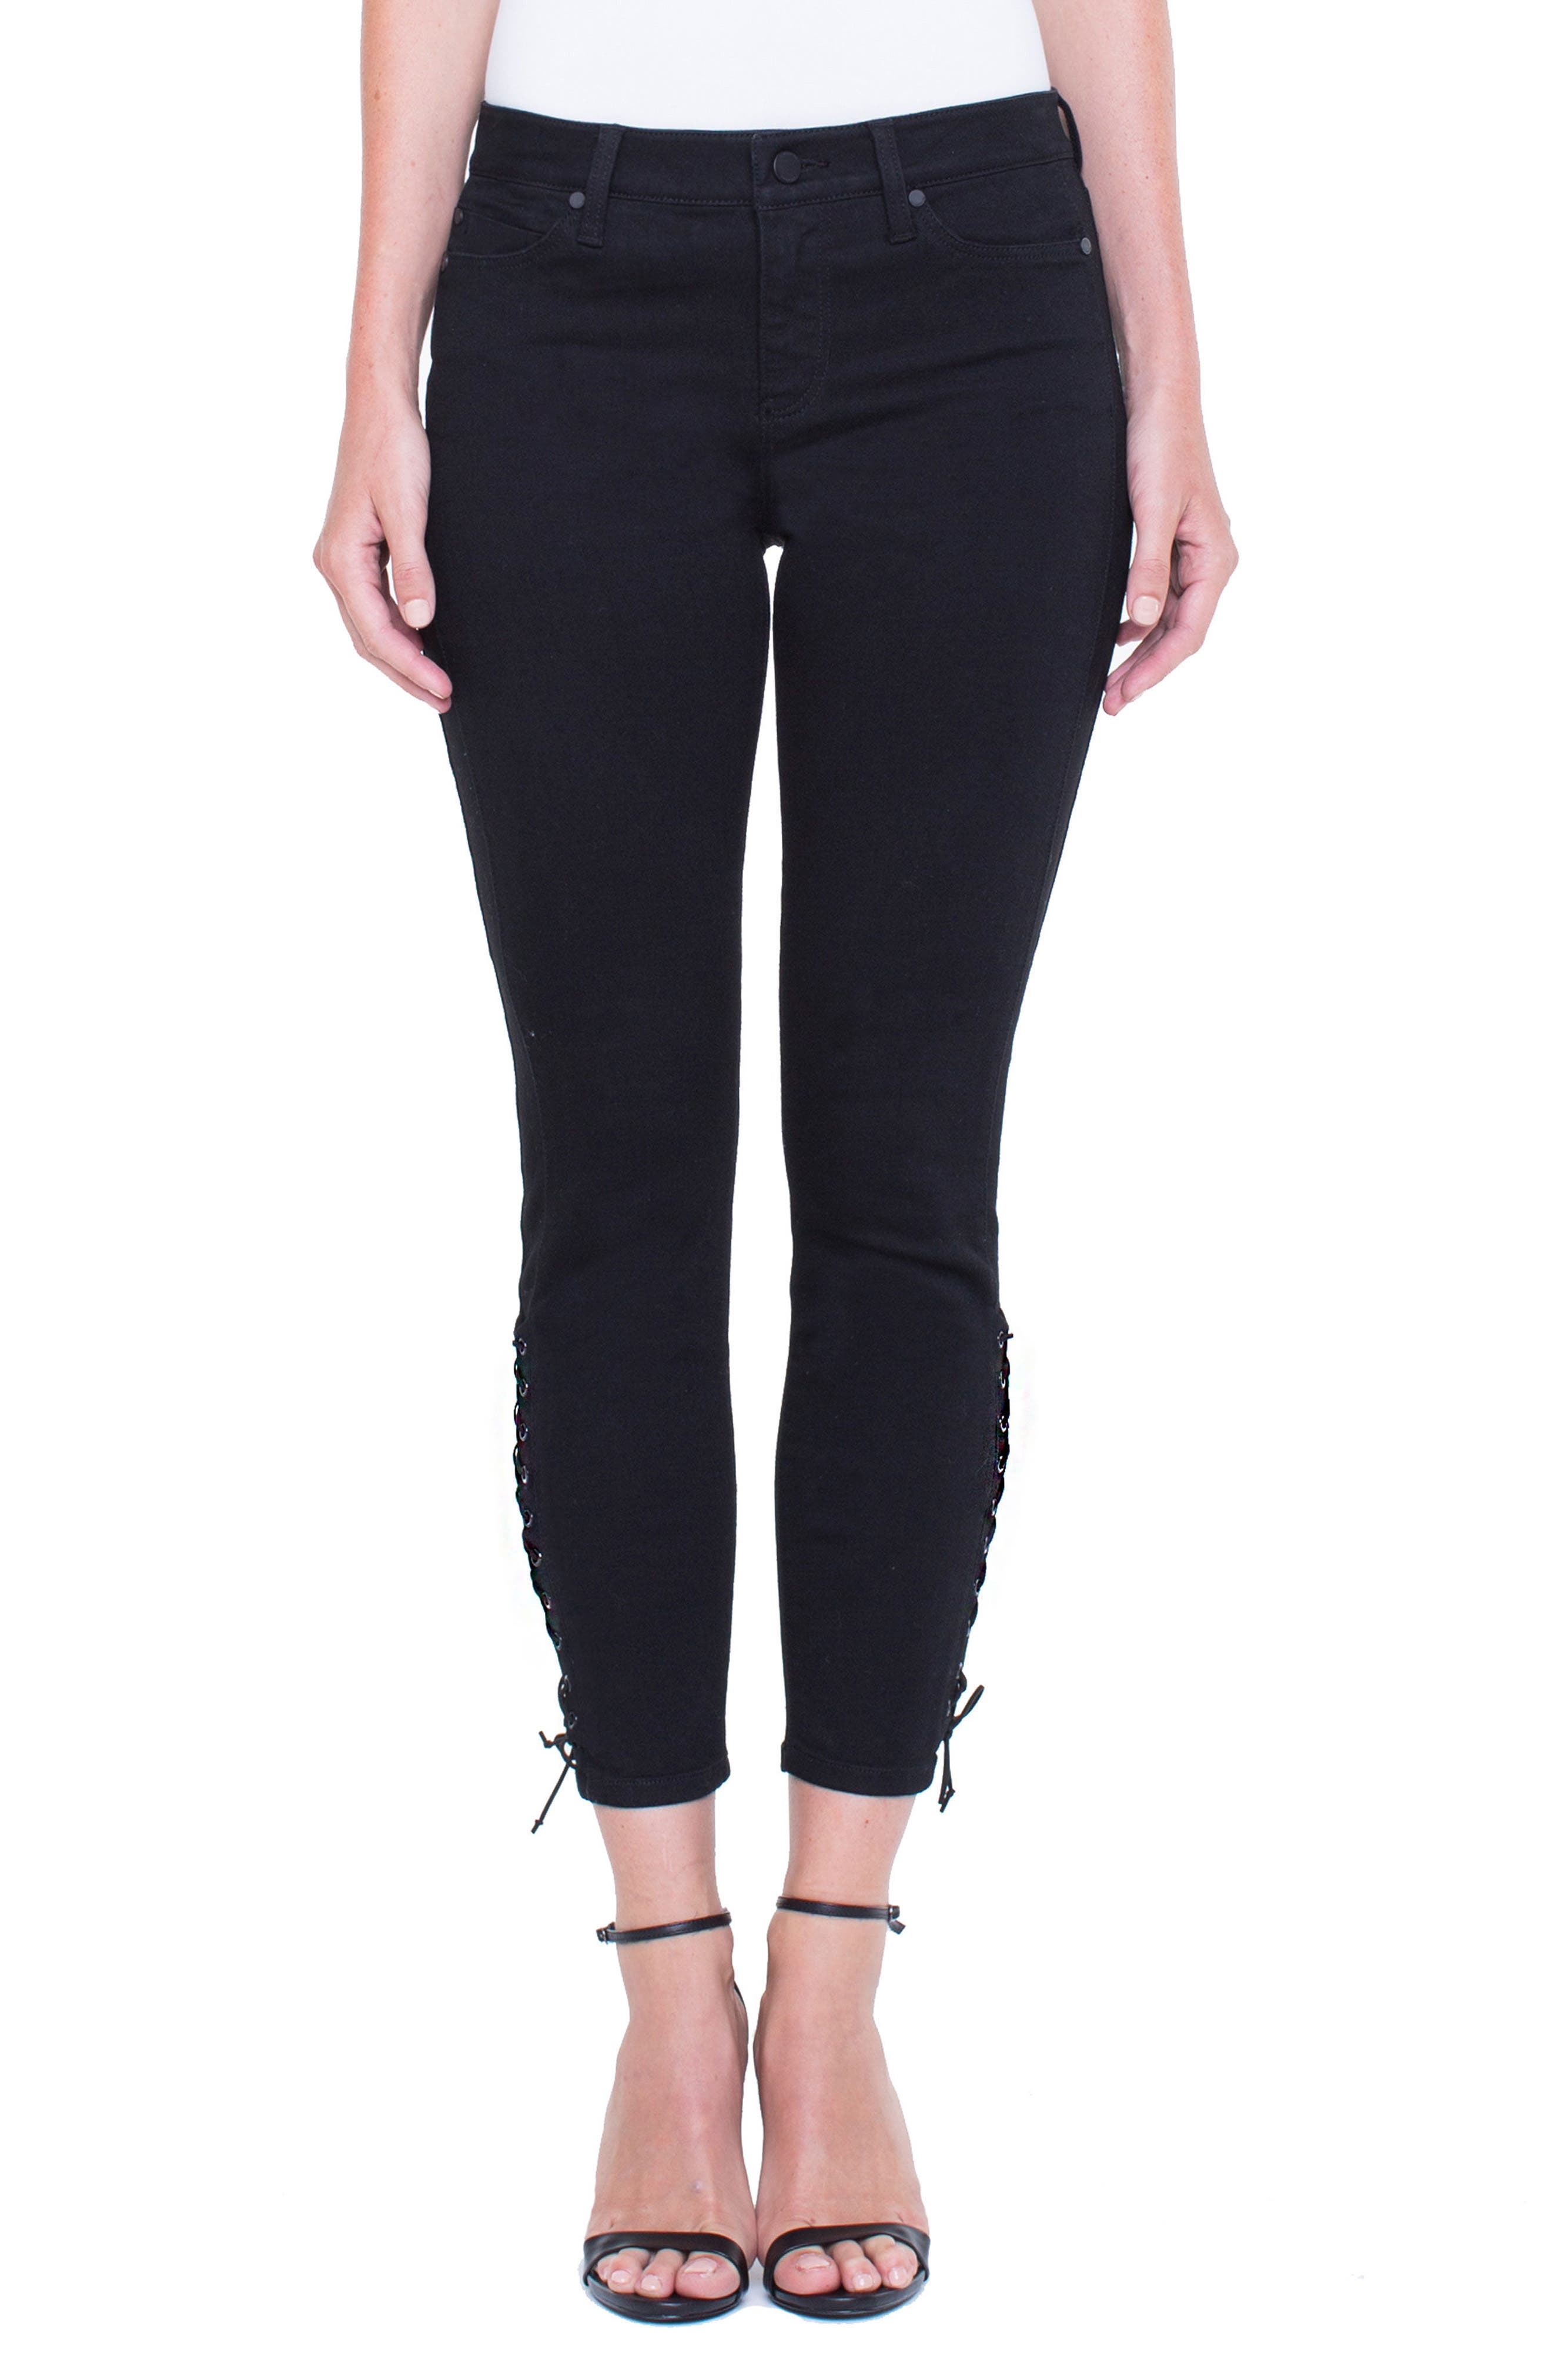 Alyssa Lace-Up Crop Skinny Jeans,                             Main thumbnail 1, color,                             Black Rinse